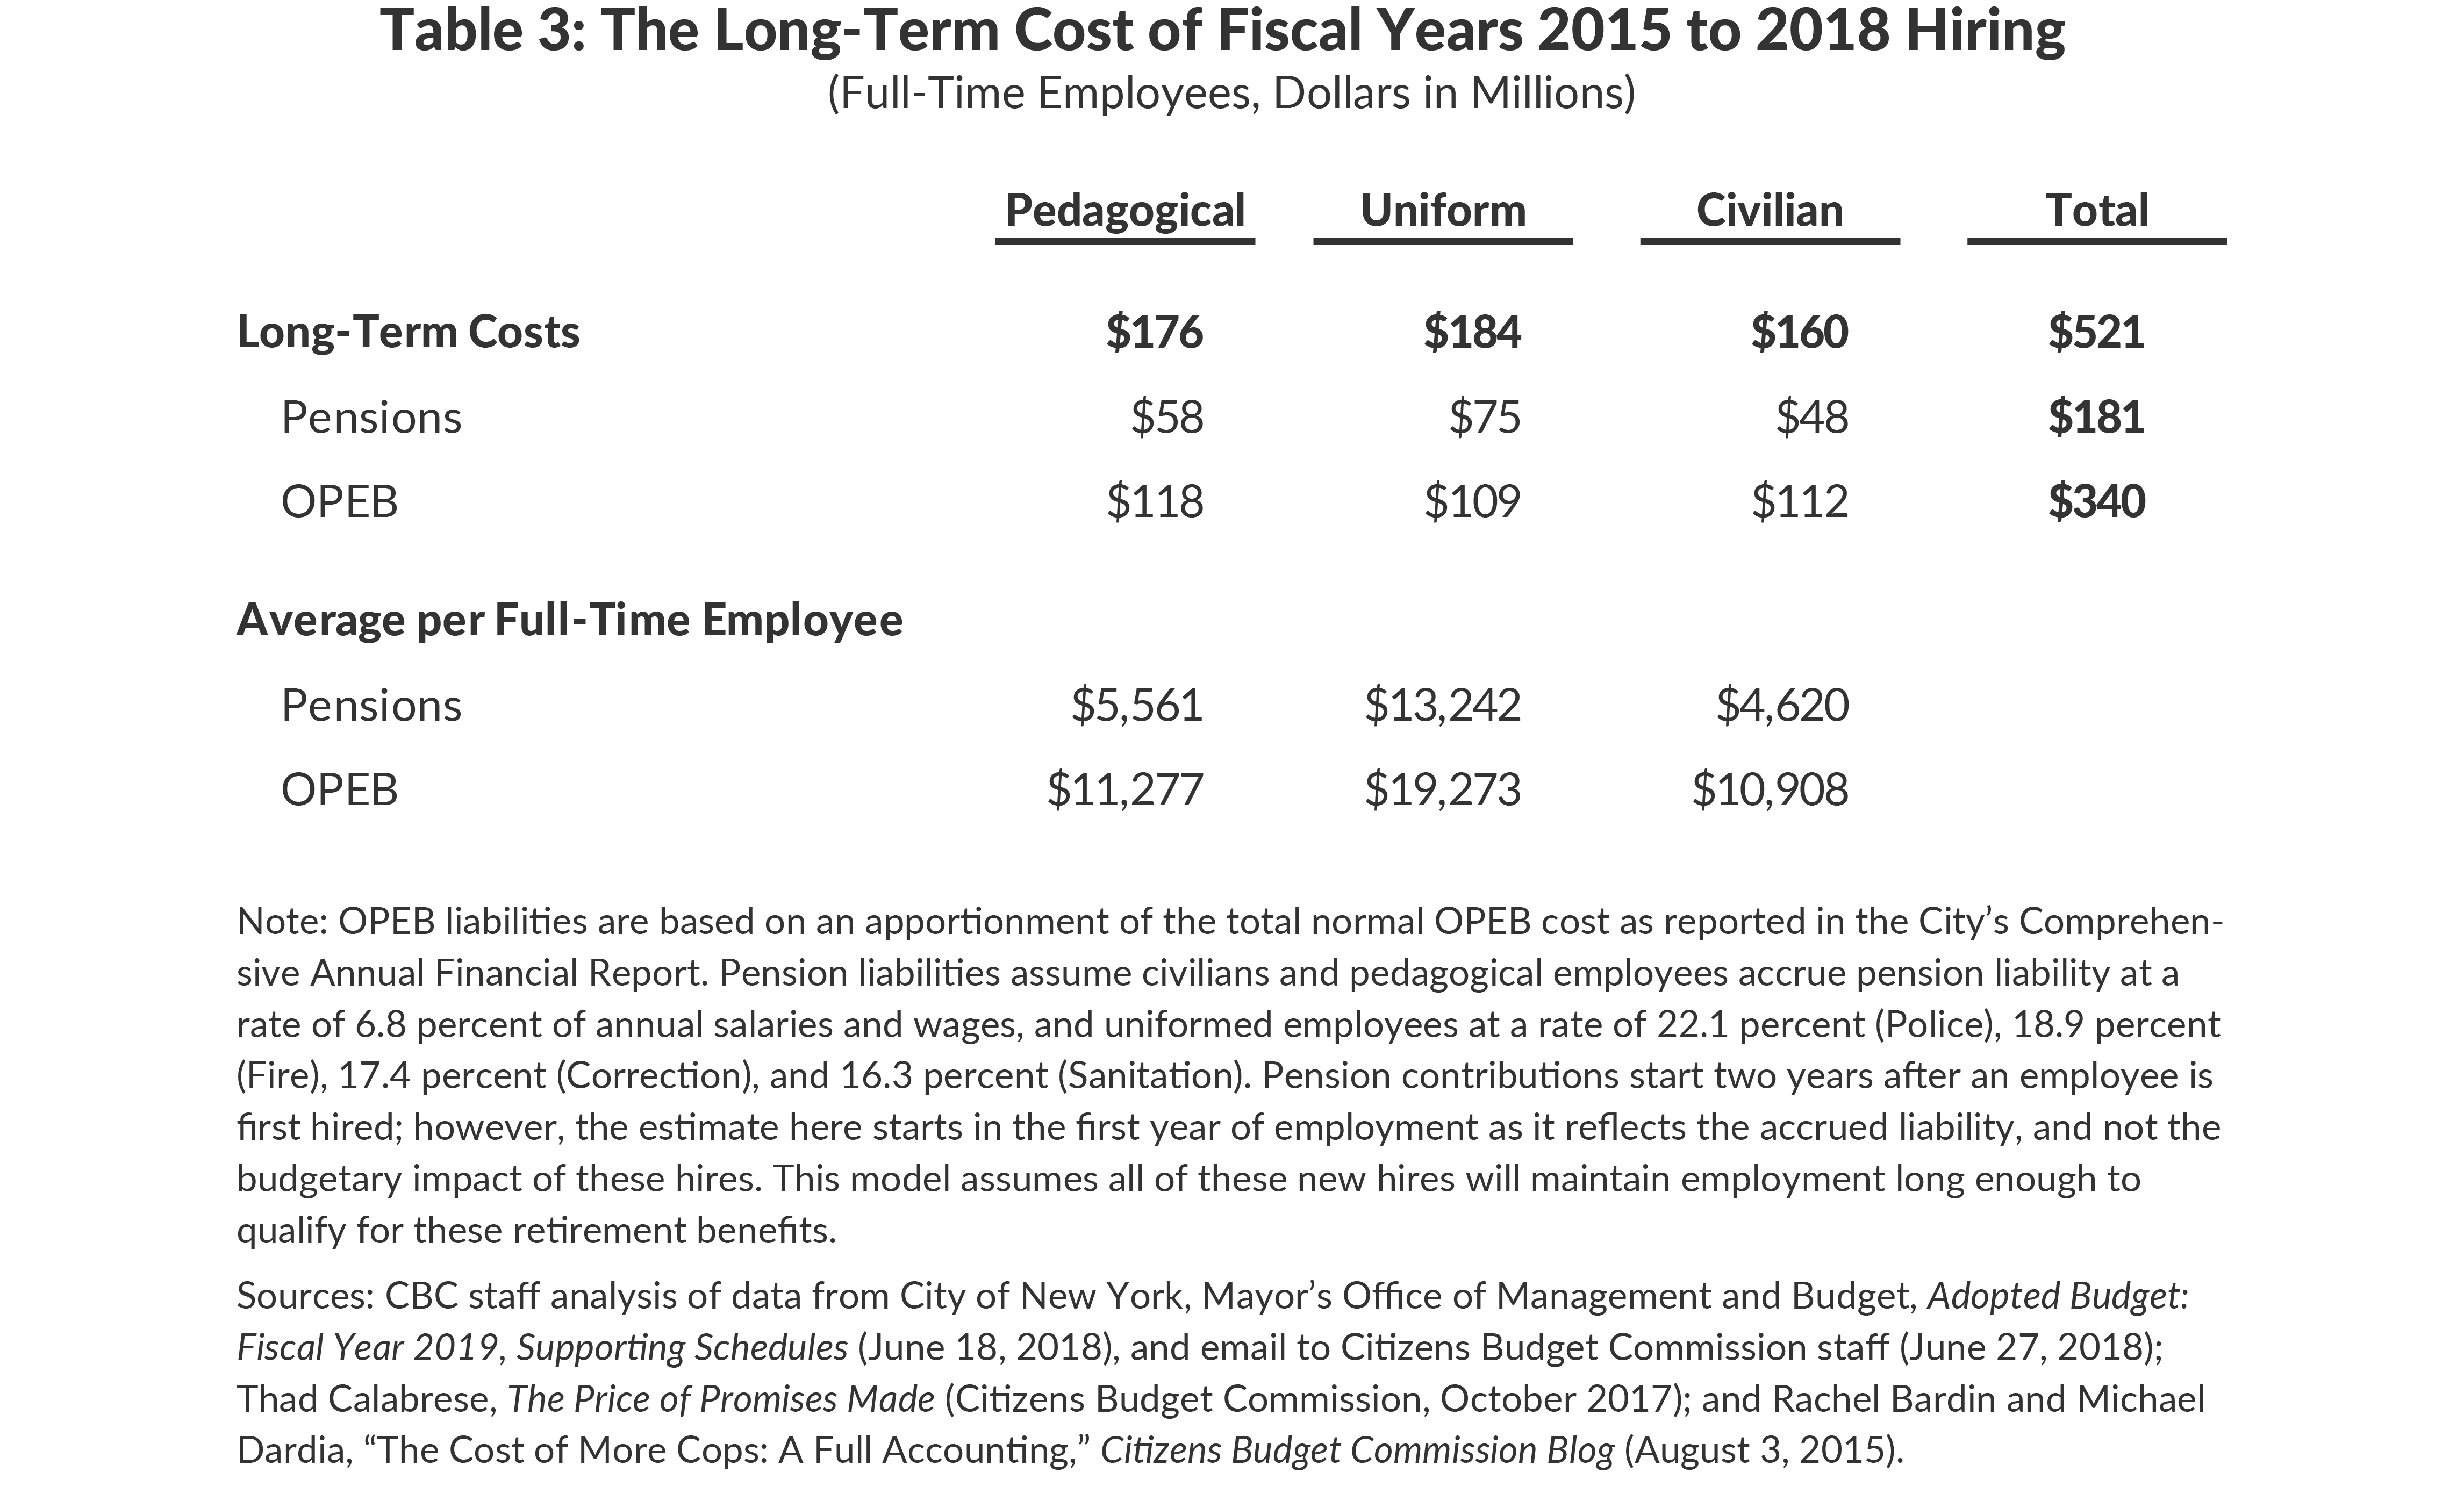 Table 3: The Long-Term Cost of Fiscal Years 2015 to 2018 Hiring (Full-Time Employees)